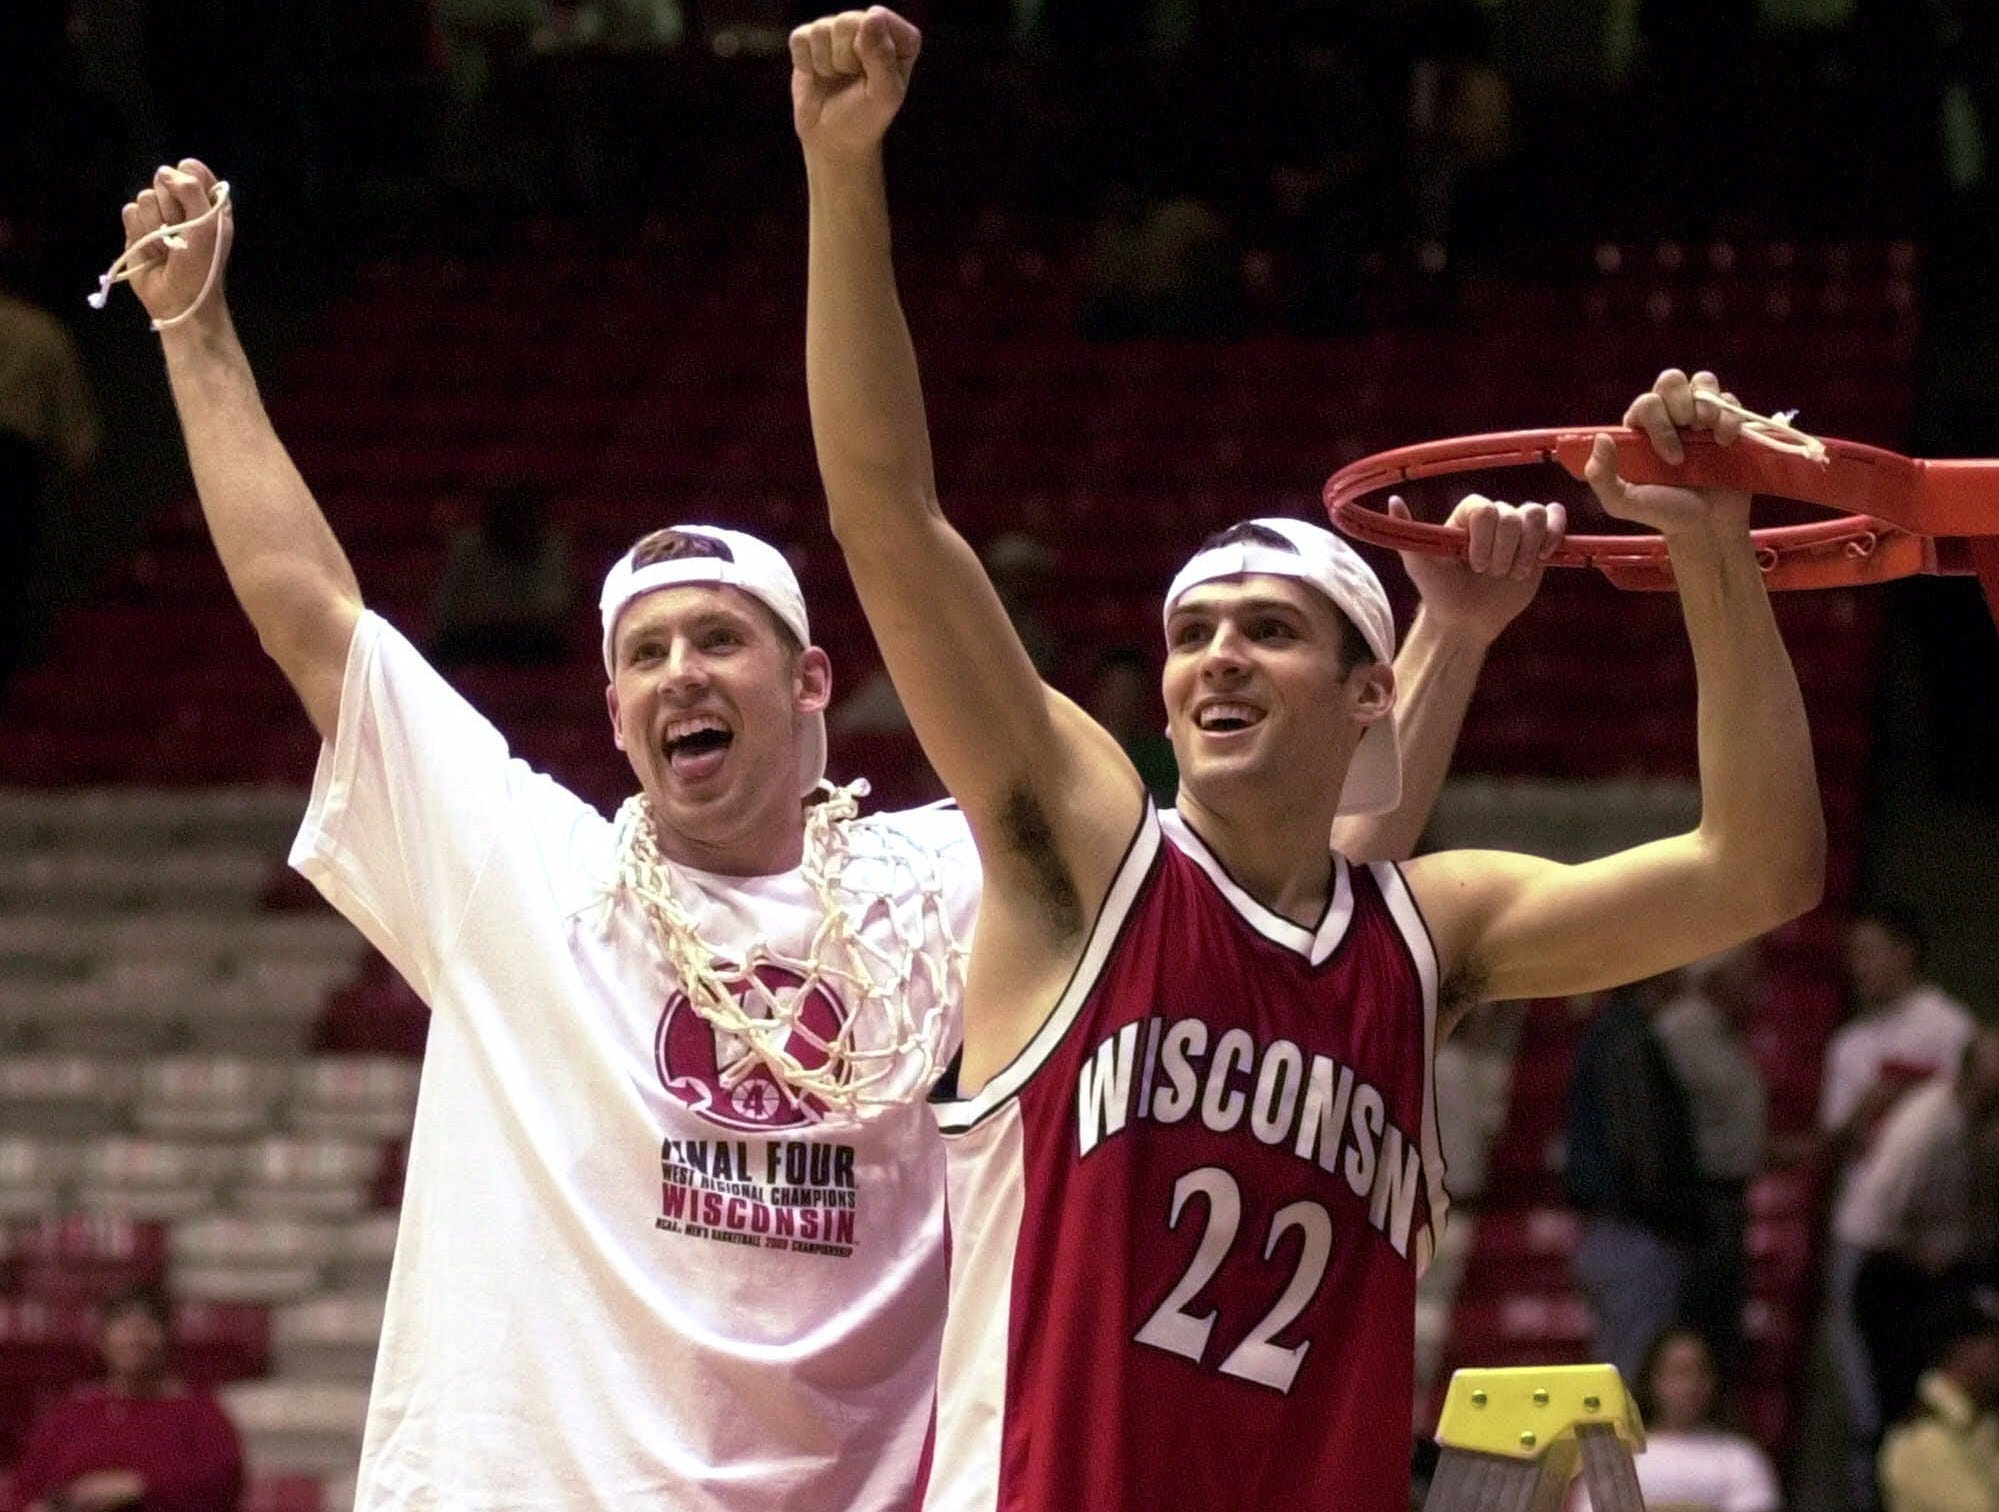 Wisconsin's Jon Bryant, left, and Mike Kelley (22) celebrate after cutting down the nets following Wisconsin's 64-60 NCAA West Regional win over Purdue Saturday, March 25, 2000.